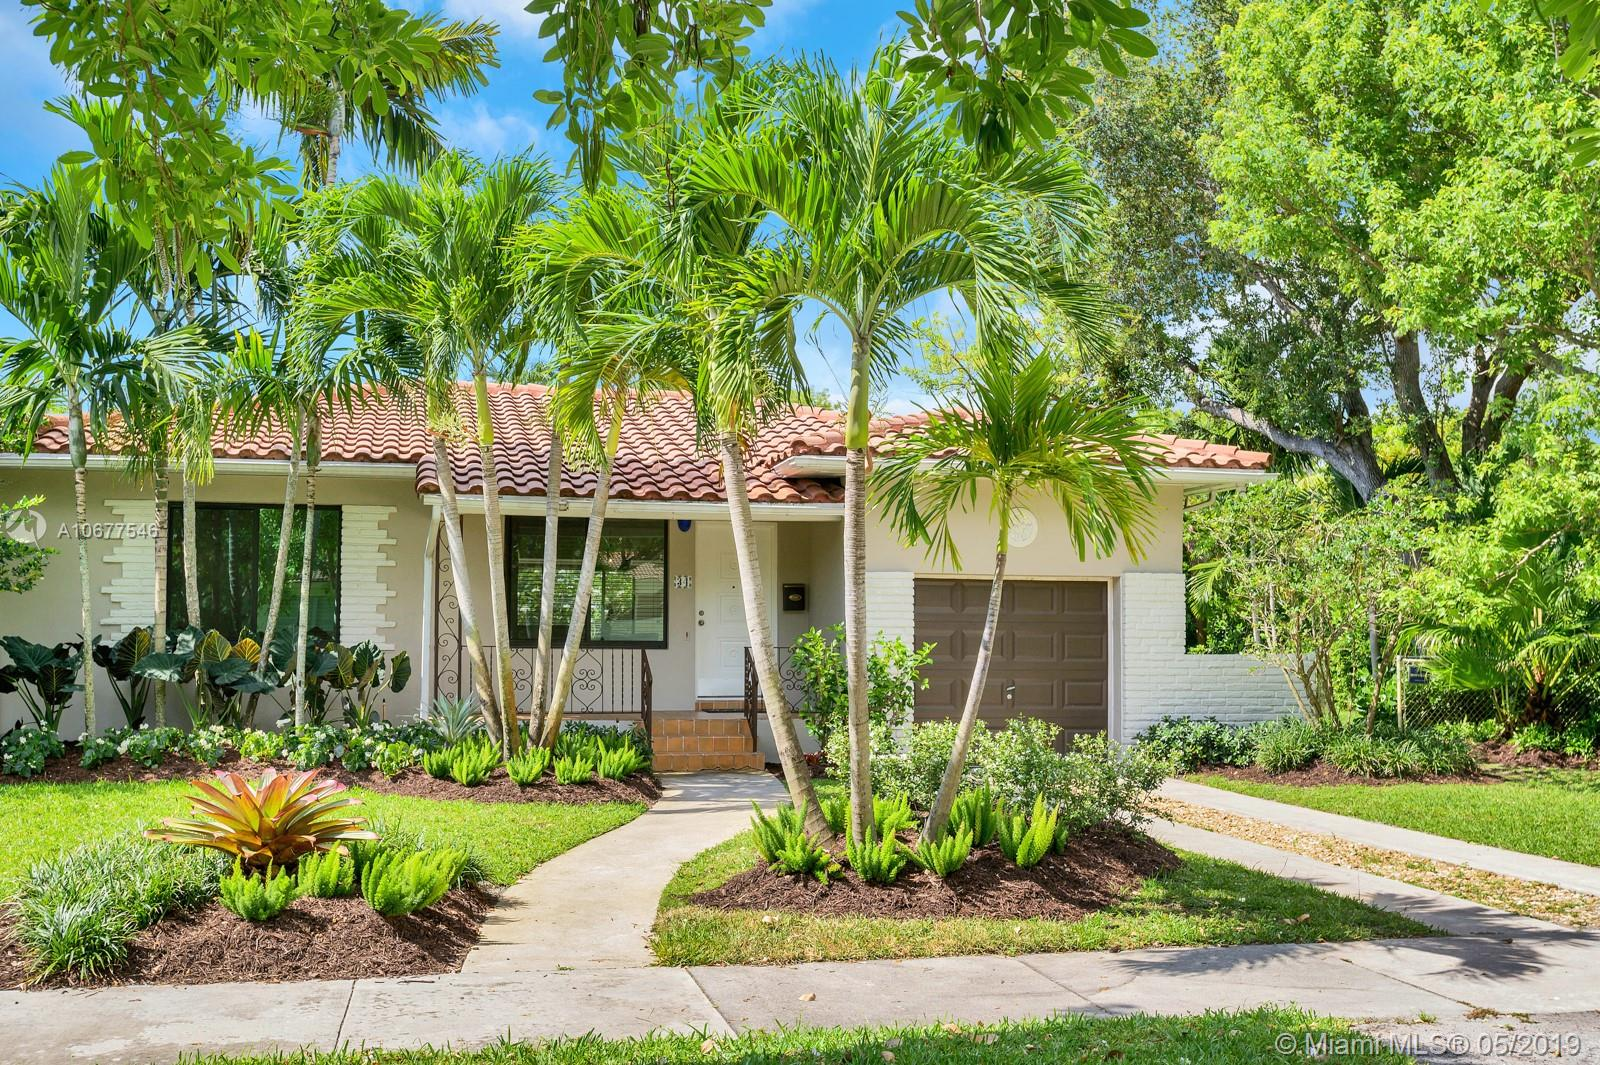 34 NW 97th St, Miami Shores, Florida